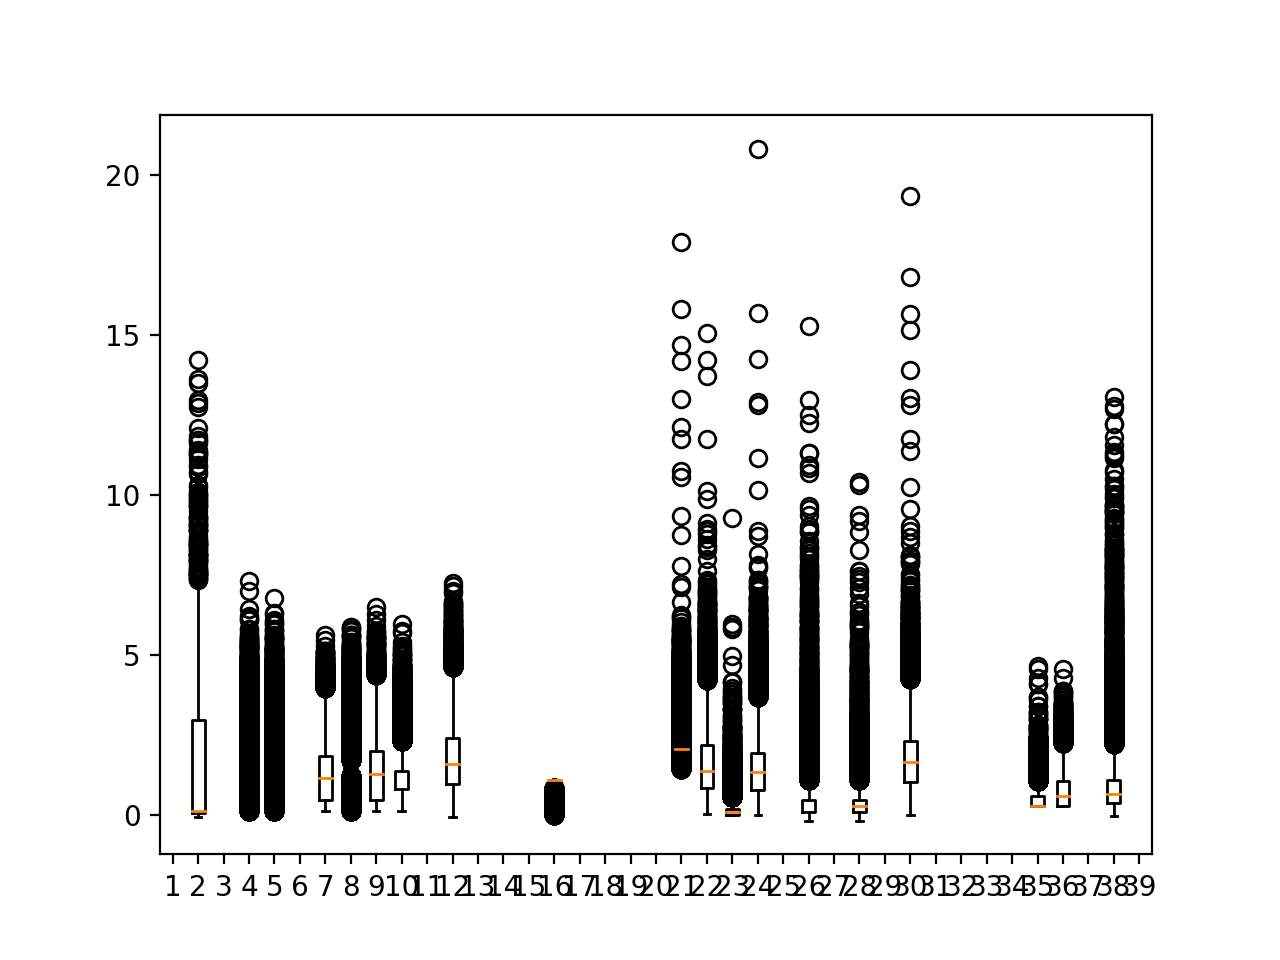 Box and whisker plots of target variables for all training data